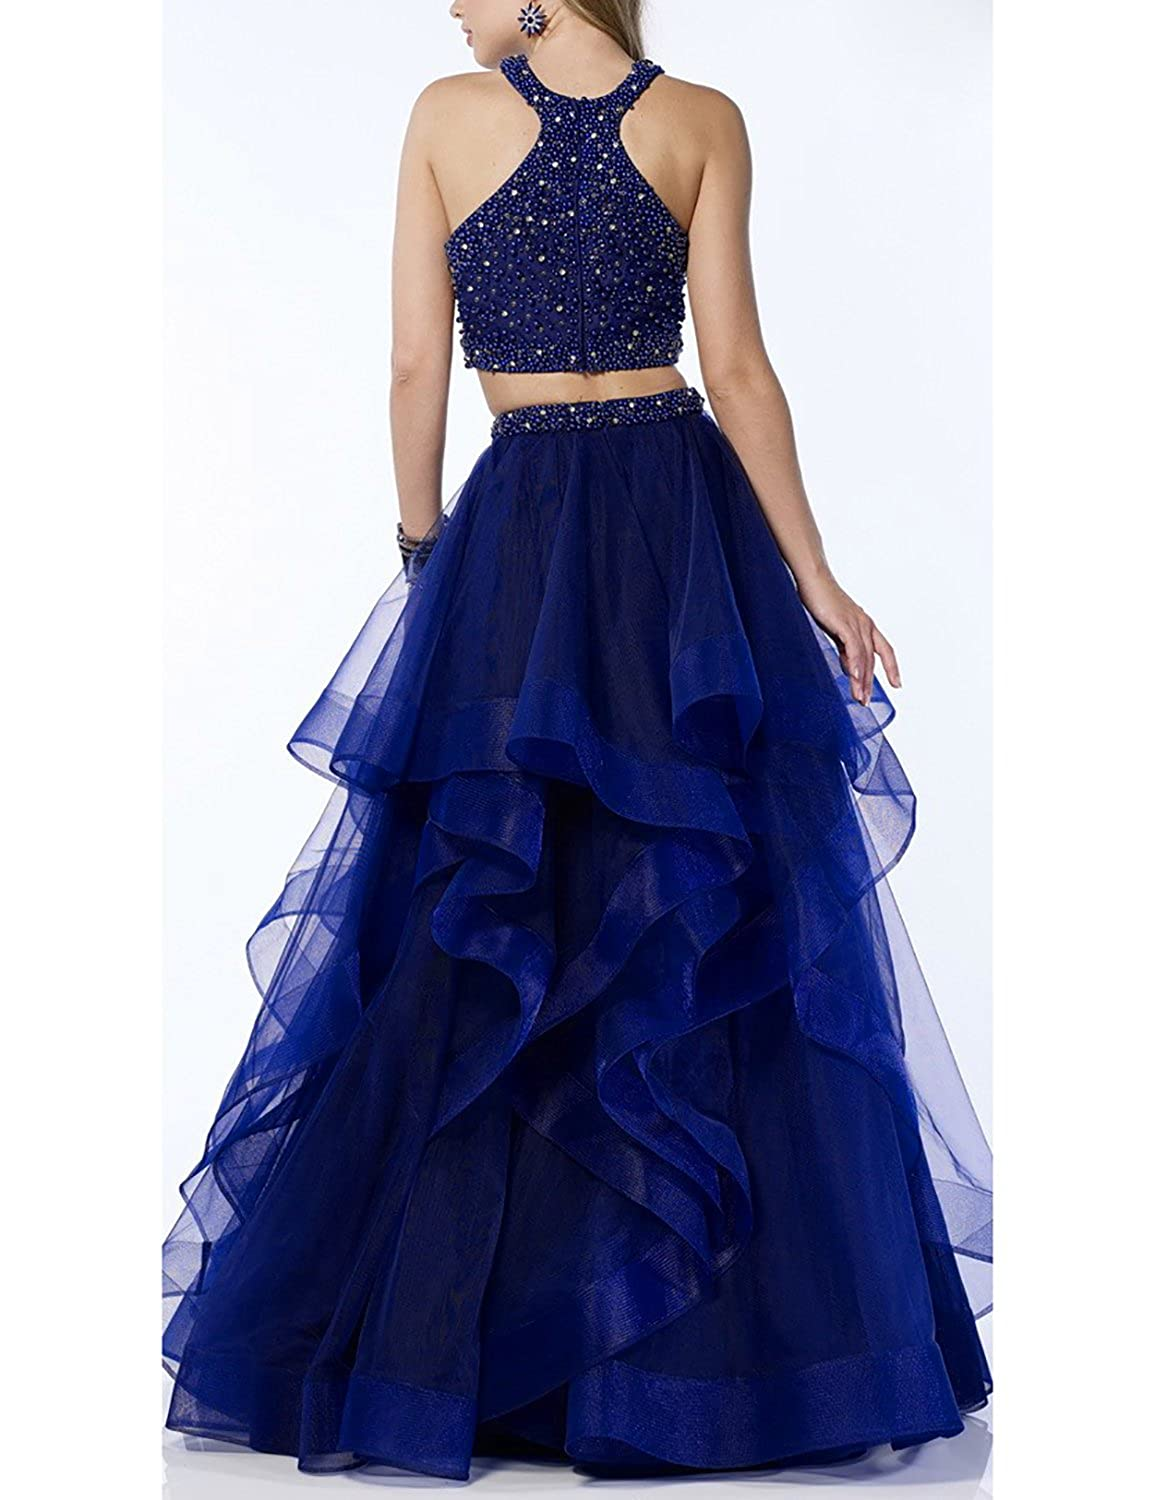 6bcdb1b6a01 DarlingU Womens 2 Pieces Beaded Homecoming Prom Dresses Formal Evening  GownPM267 at Amazon Women s Clothing store